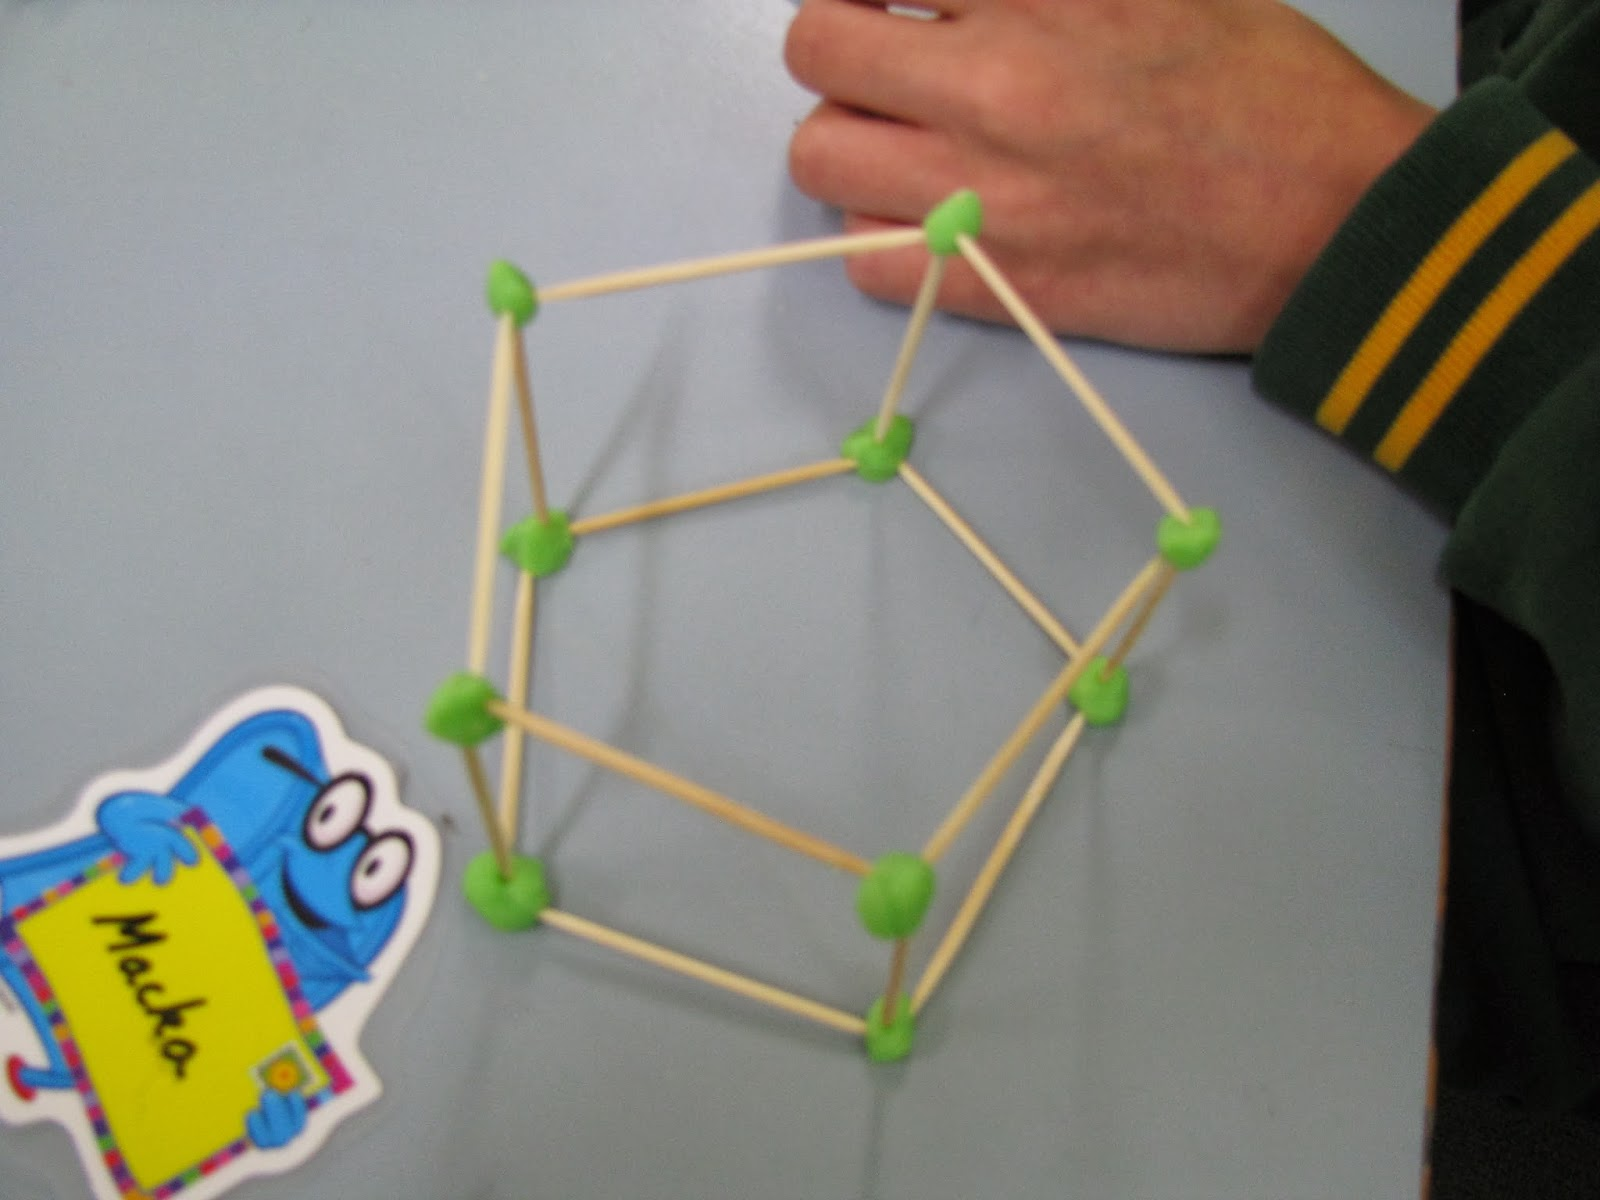 Making 3d shapes teaching maths with meaning How to make 3d shapes